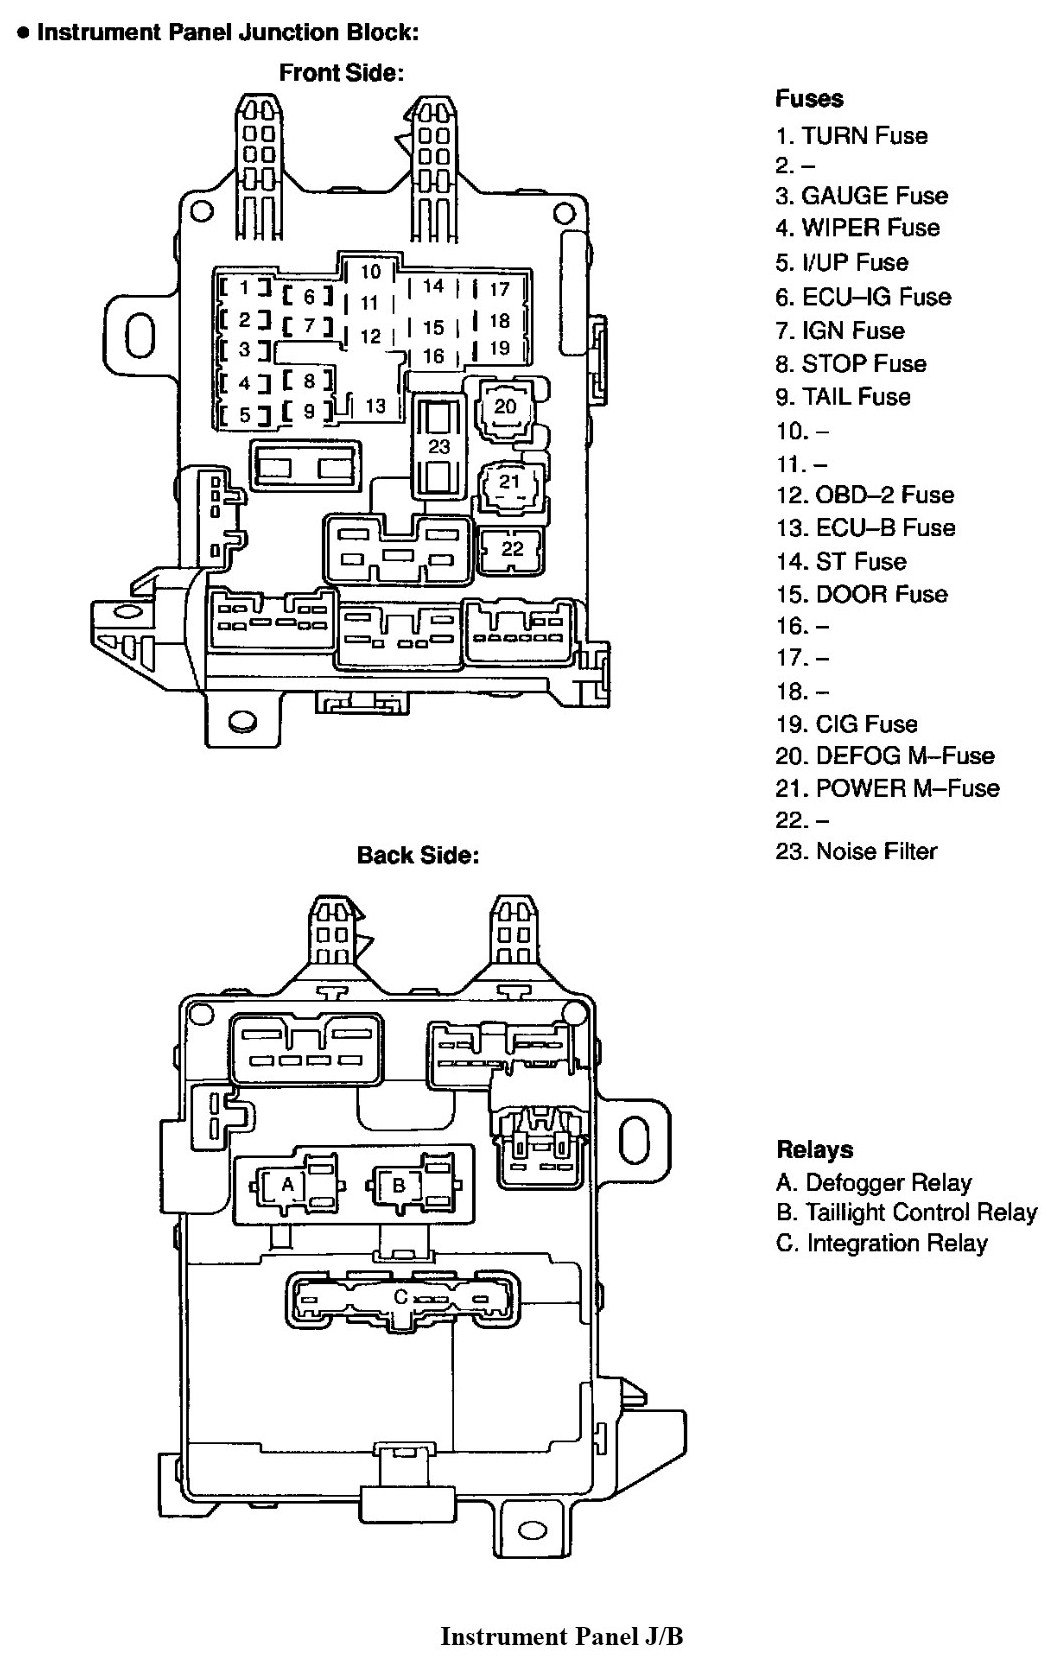 2003 Toyota Corolla Fuse Box Diagram Exploded Wiring Libraries Honda Accord For 2002 Simple Schema2001 Location